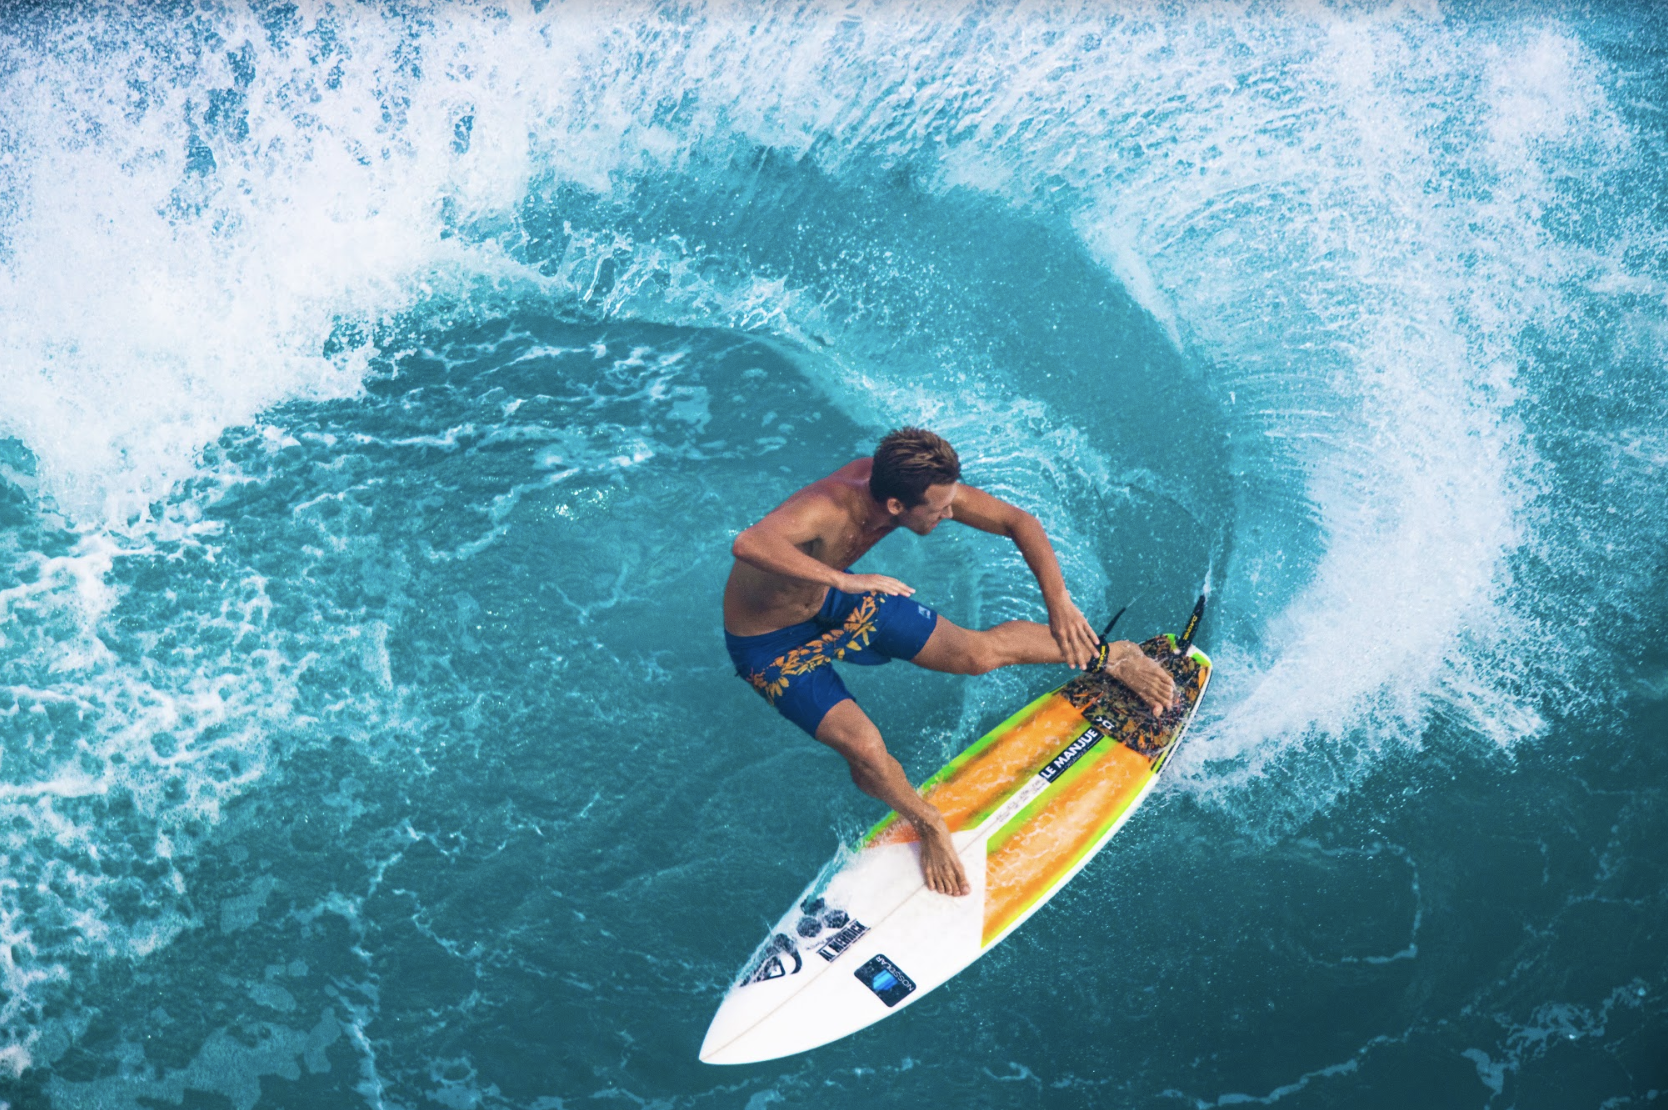 50 years of Quiksilver | Keeping things real since 1969